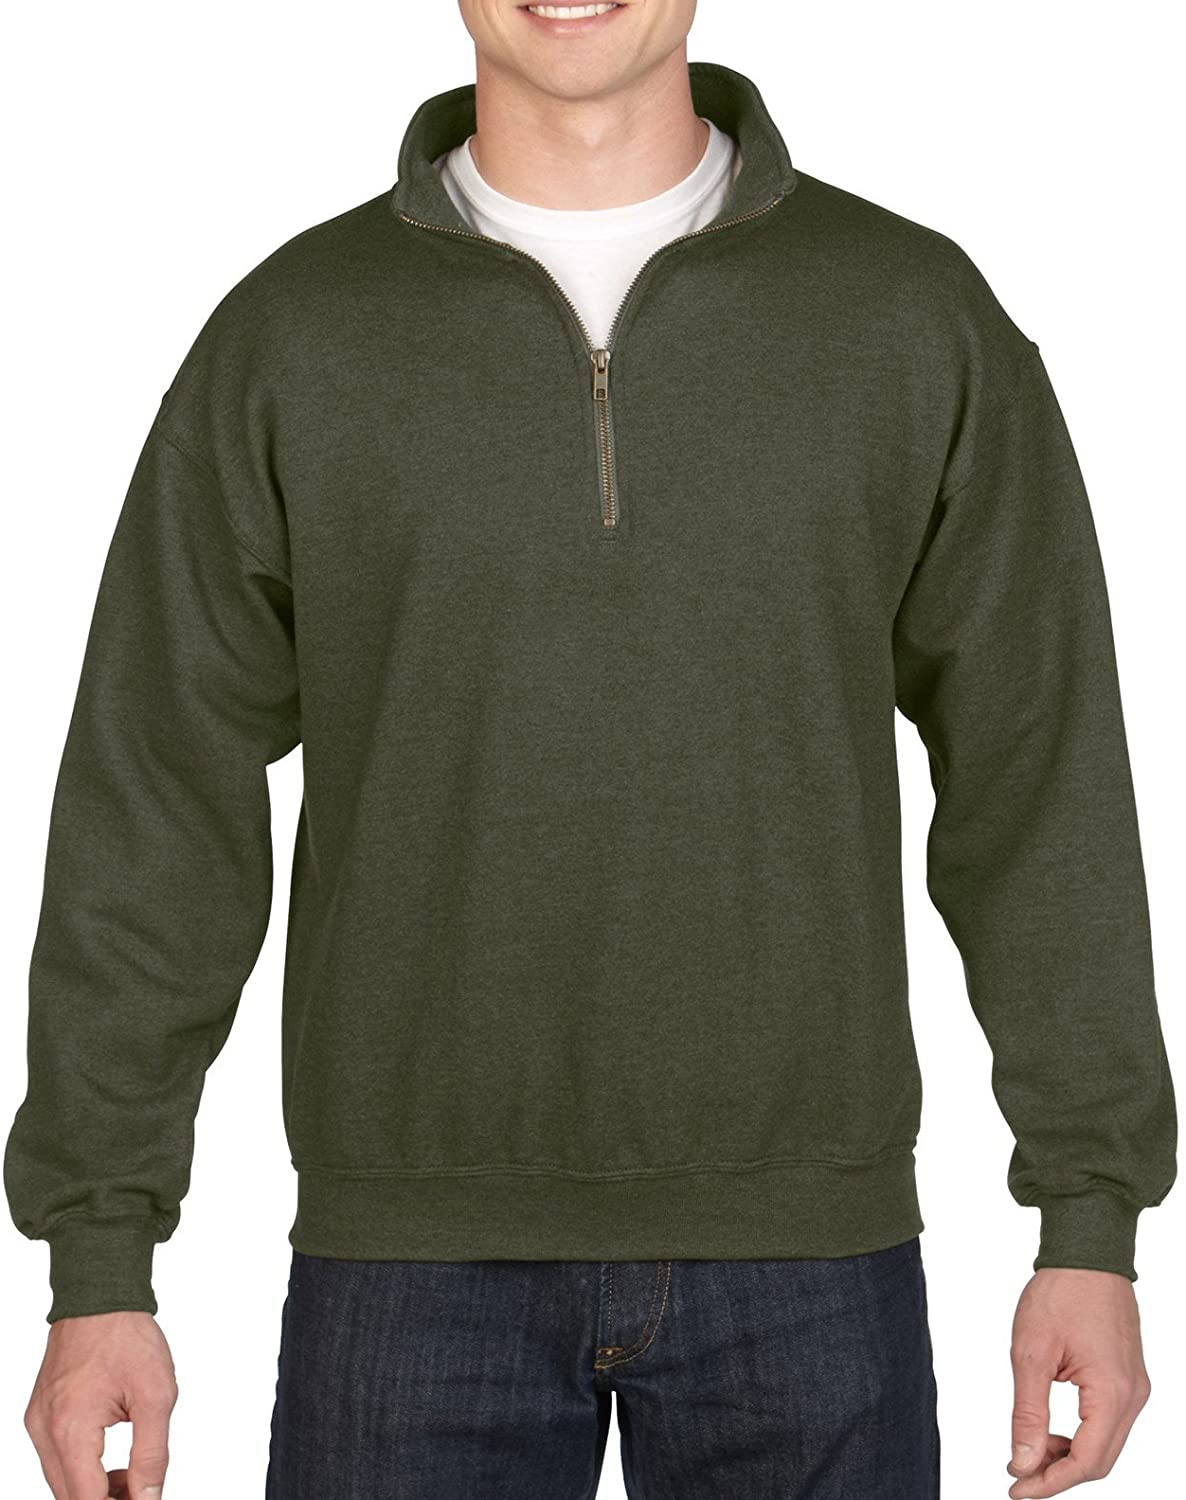 Gildan Men's Fleece Quarter-Zip Cadet Collar Sweatshirt